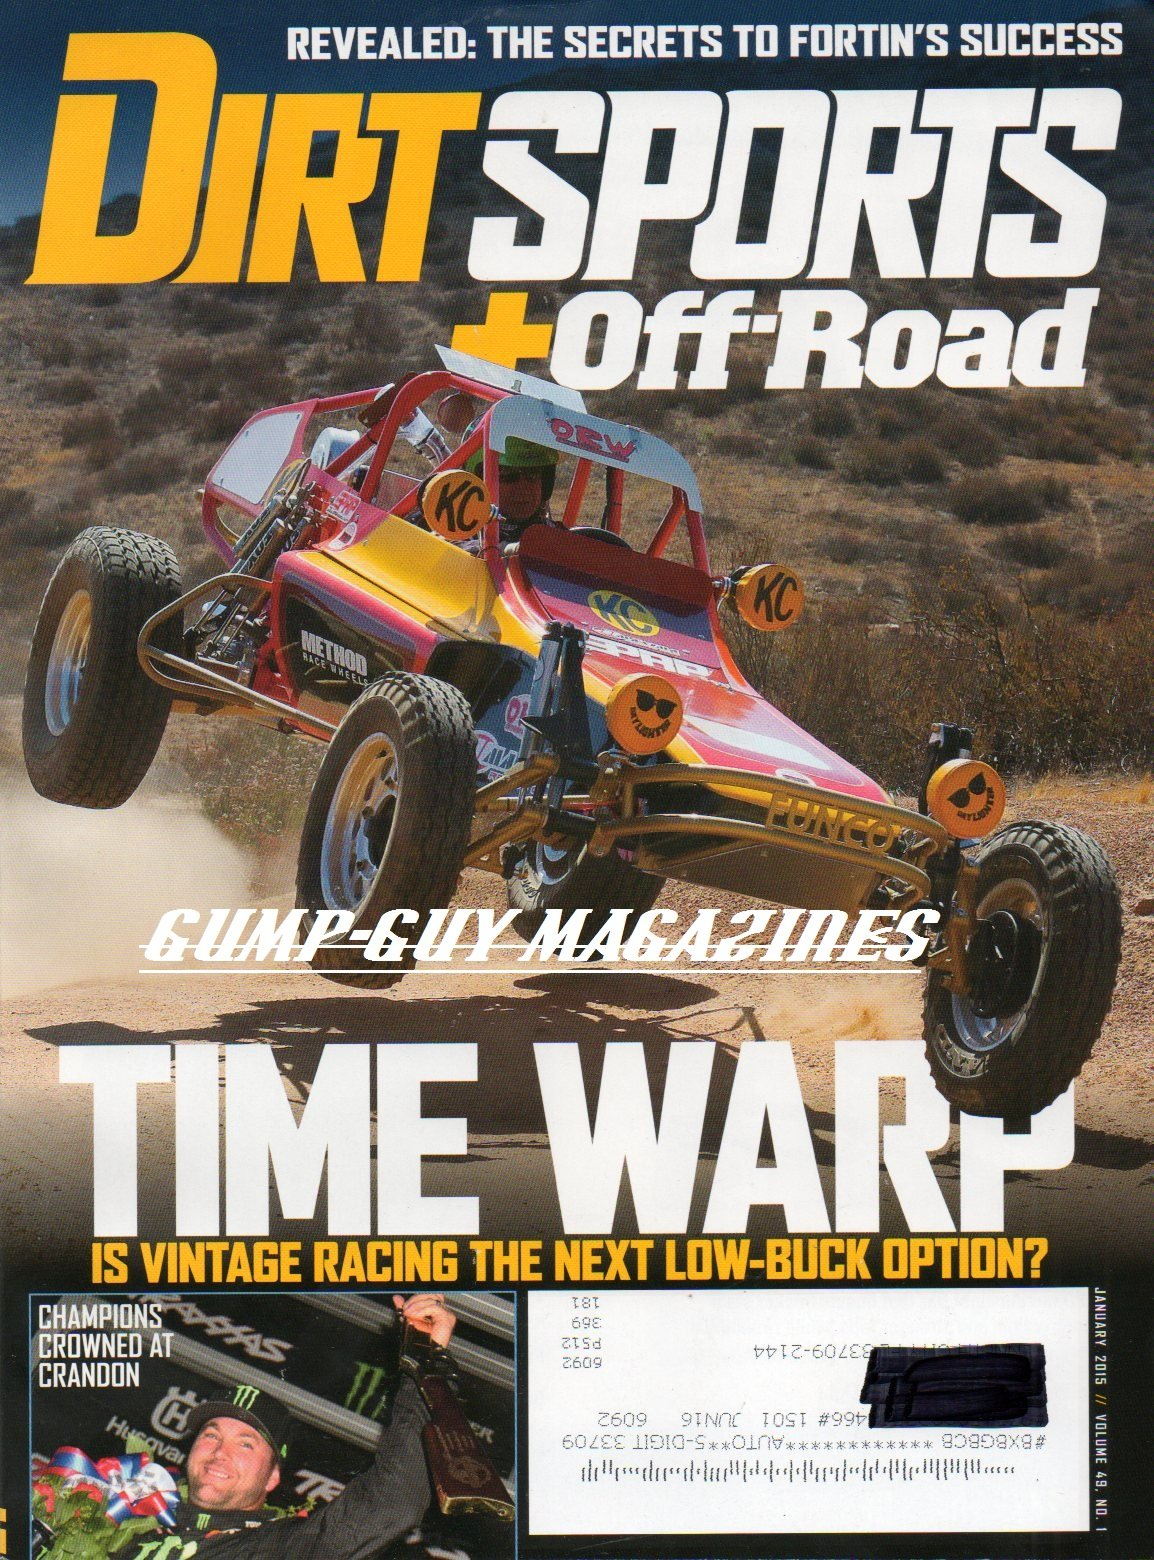 Dirt Sports+Off-Road Magazine January 2015 TIME WARP IS VINTAGE RACING THE NEXT LOW-BUCK OPTION? Revealed: Secrets To Fortin's Success CHAMPION'S CROWNED AT CRANDON pdf epub